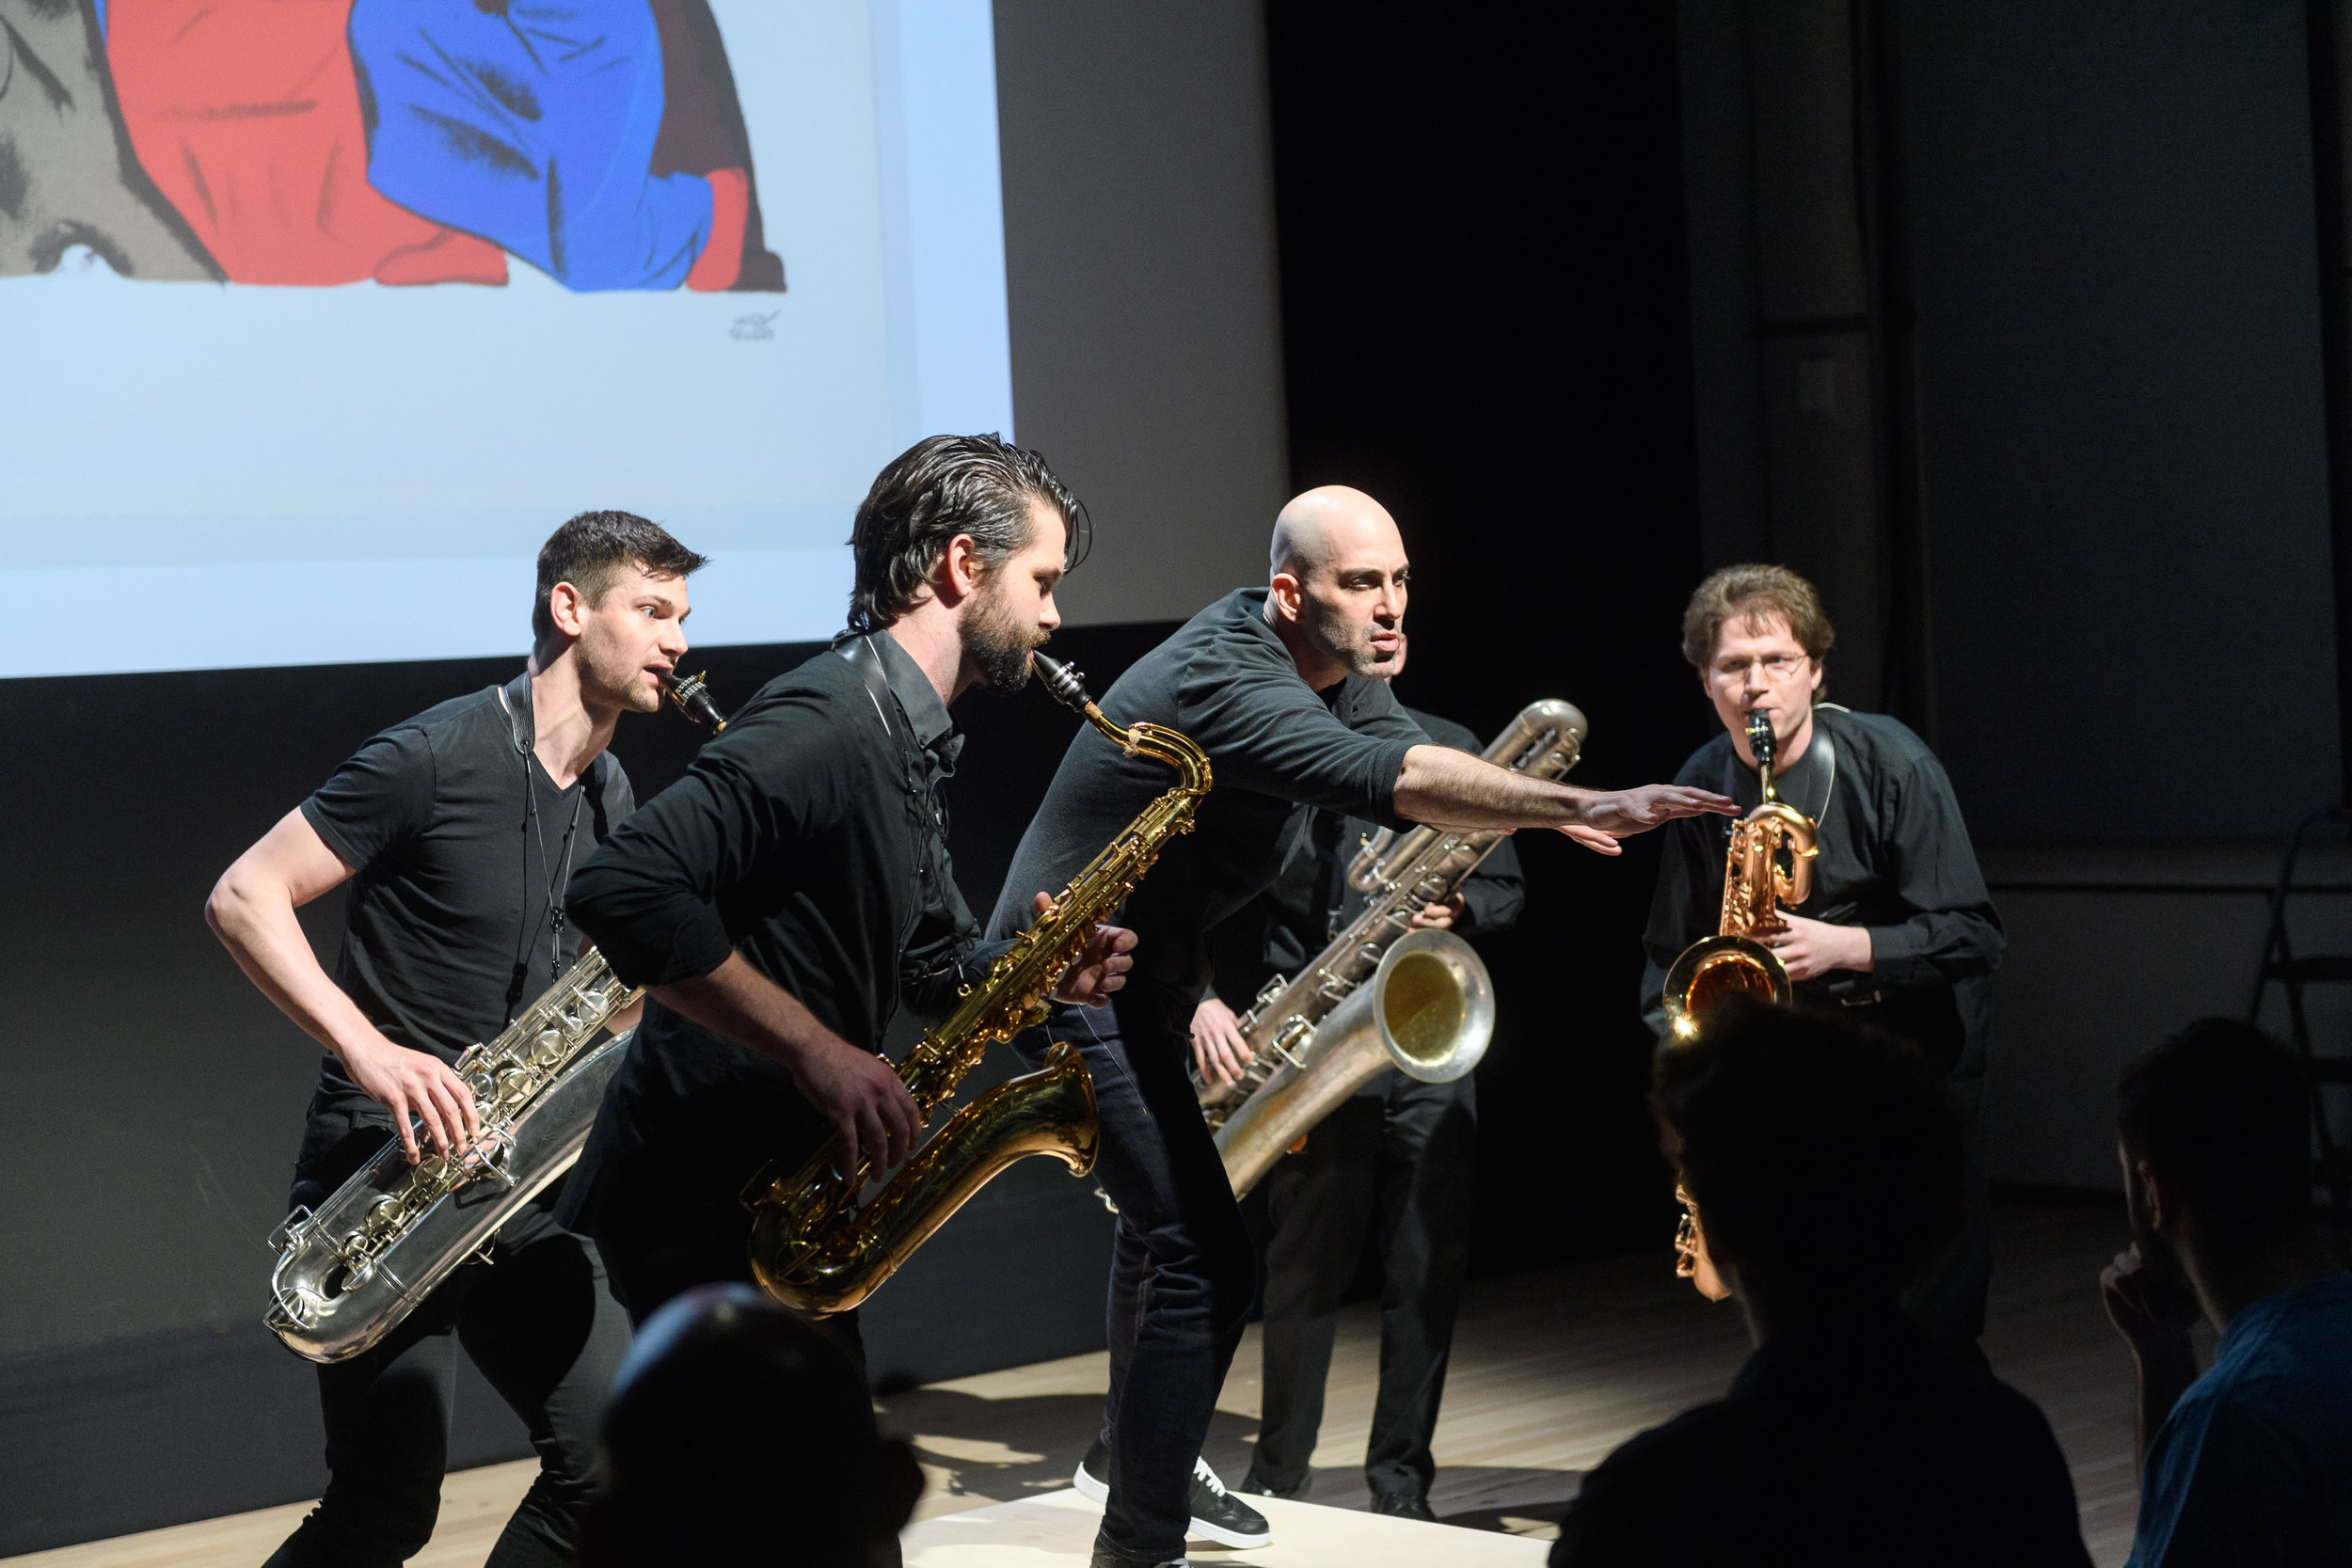 Performance at The Whitney Museum of American Art with ASL Slam   Pictured (left to right): Thomas Giles (Baritone Saxophone), Cole Belt (Tenor Saxophone), Douglas Ridloff (Visual Poet), Ryan Mantell (Bass Saxophone), and Joshua Lang (Baritone Saxophone).